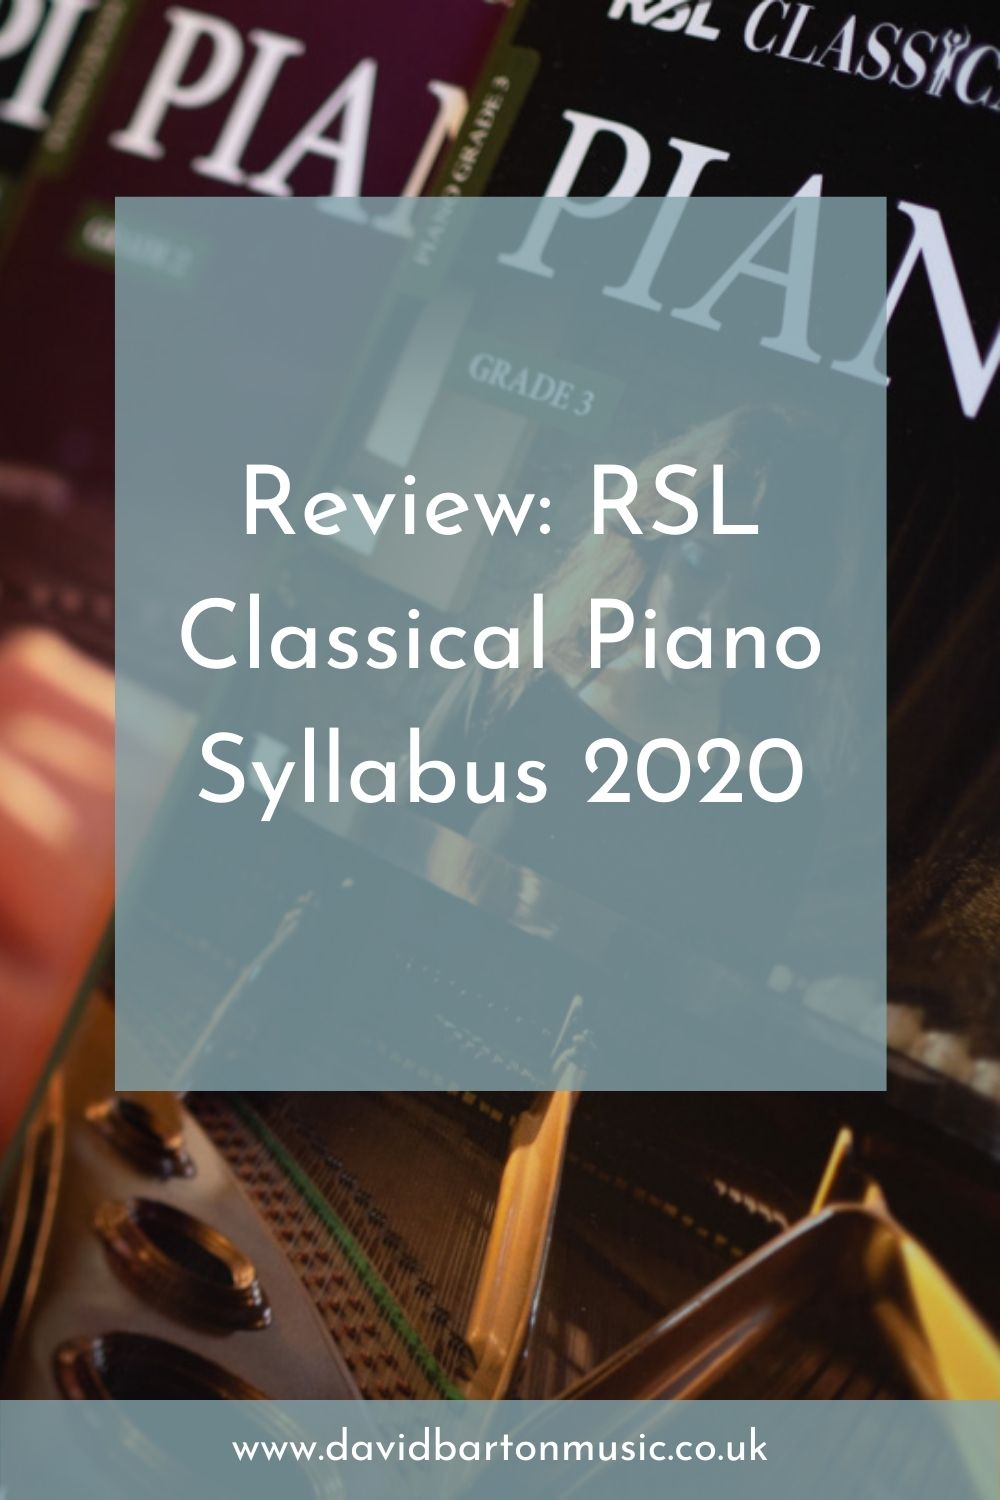 Review: RSL Classical Piano Syllabus 2020 - Pinterest Graphic